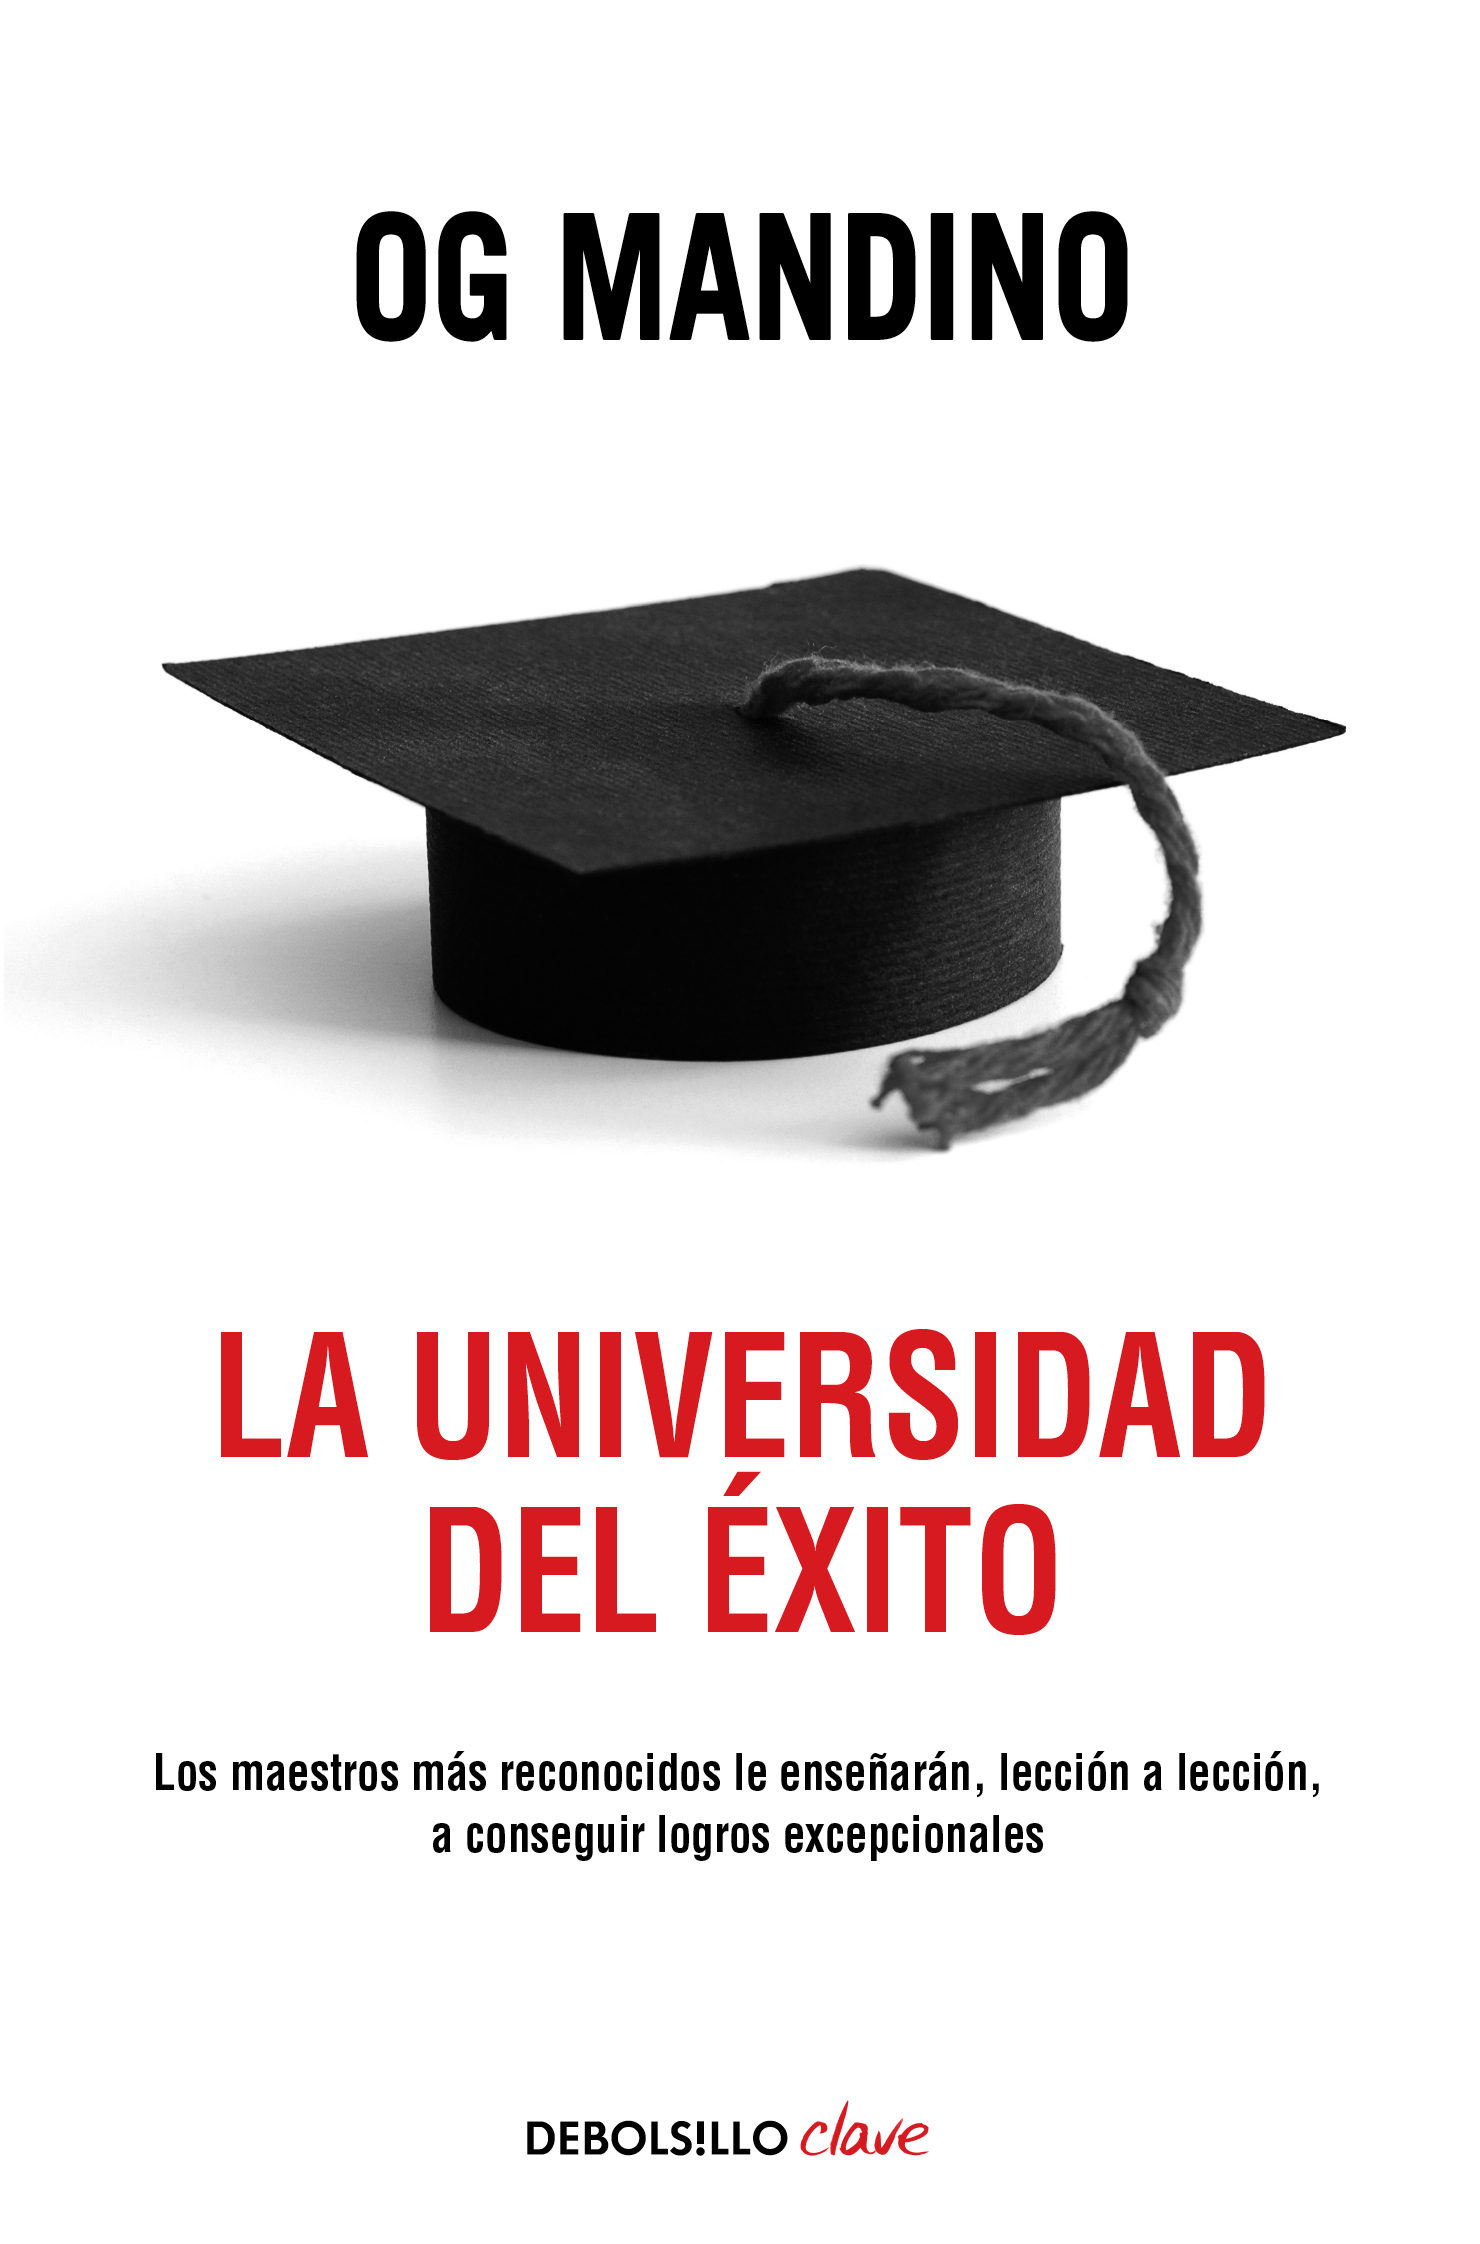 La universidad del xito ebook og mandino descargar libro pdf o la universidad del xito ebook og mandino 9788490321775 fandeluxe Choice Image